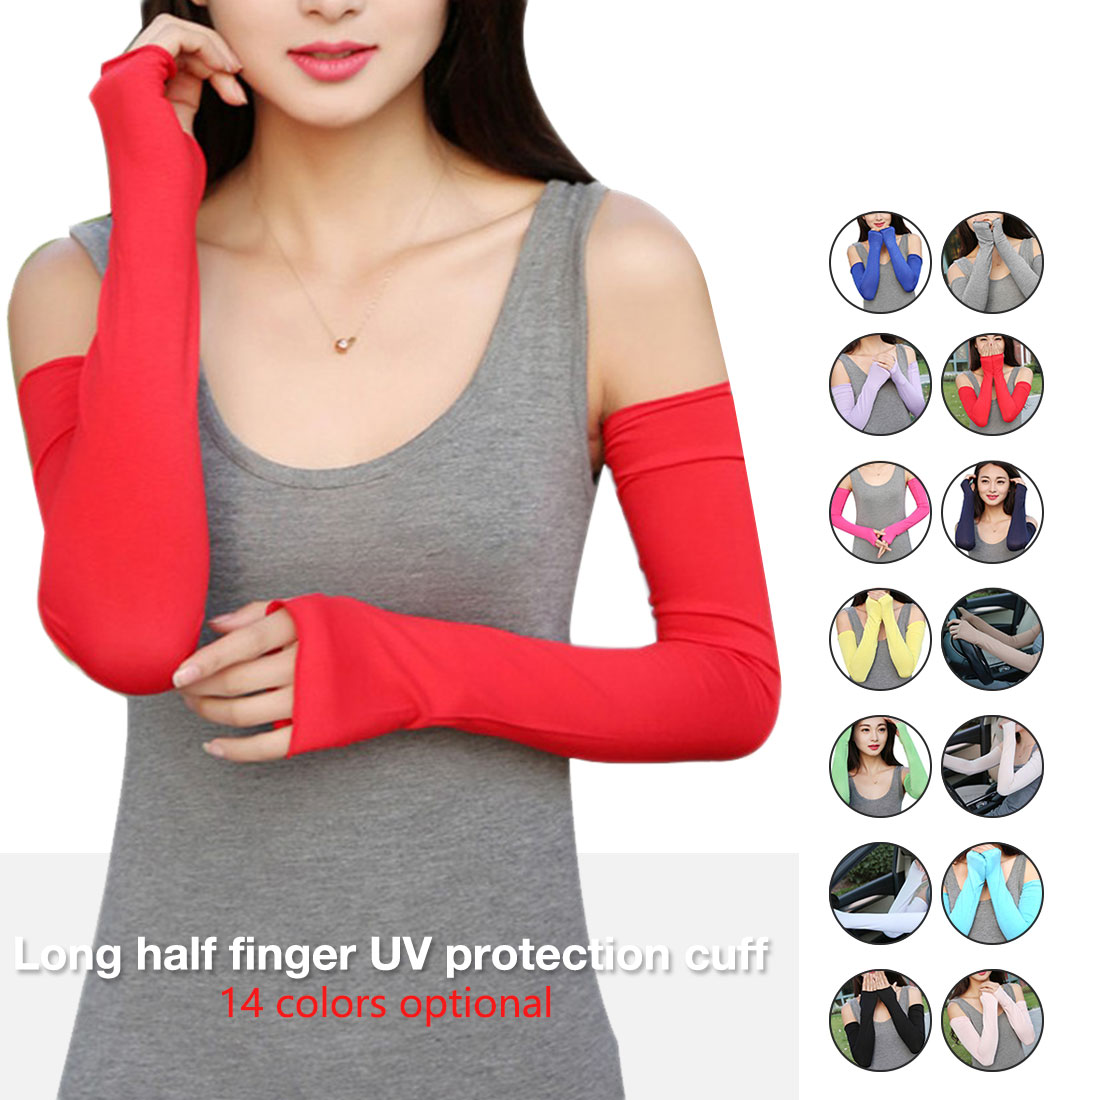 Man Women Long Gloves Sun UV Protection Hand Protector Cover Arm Sleeves Ice Silk Sunscreen Sleeves Elbow Arm Sleeves Arm Cover